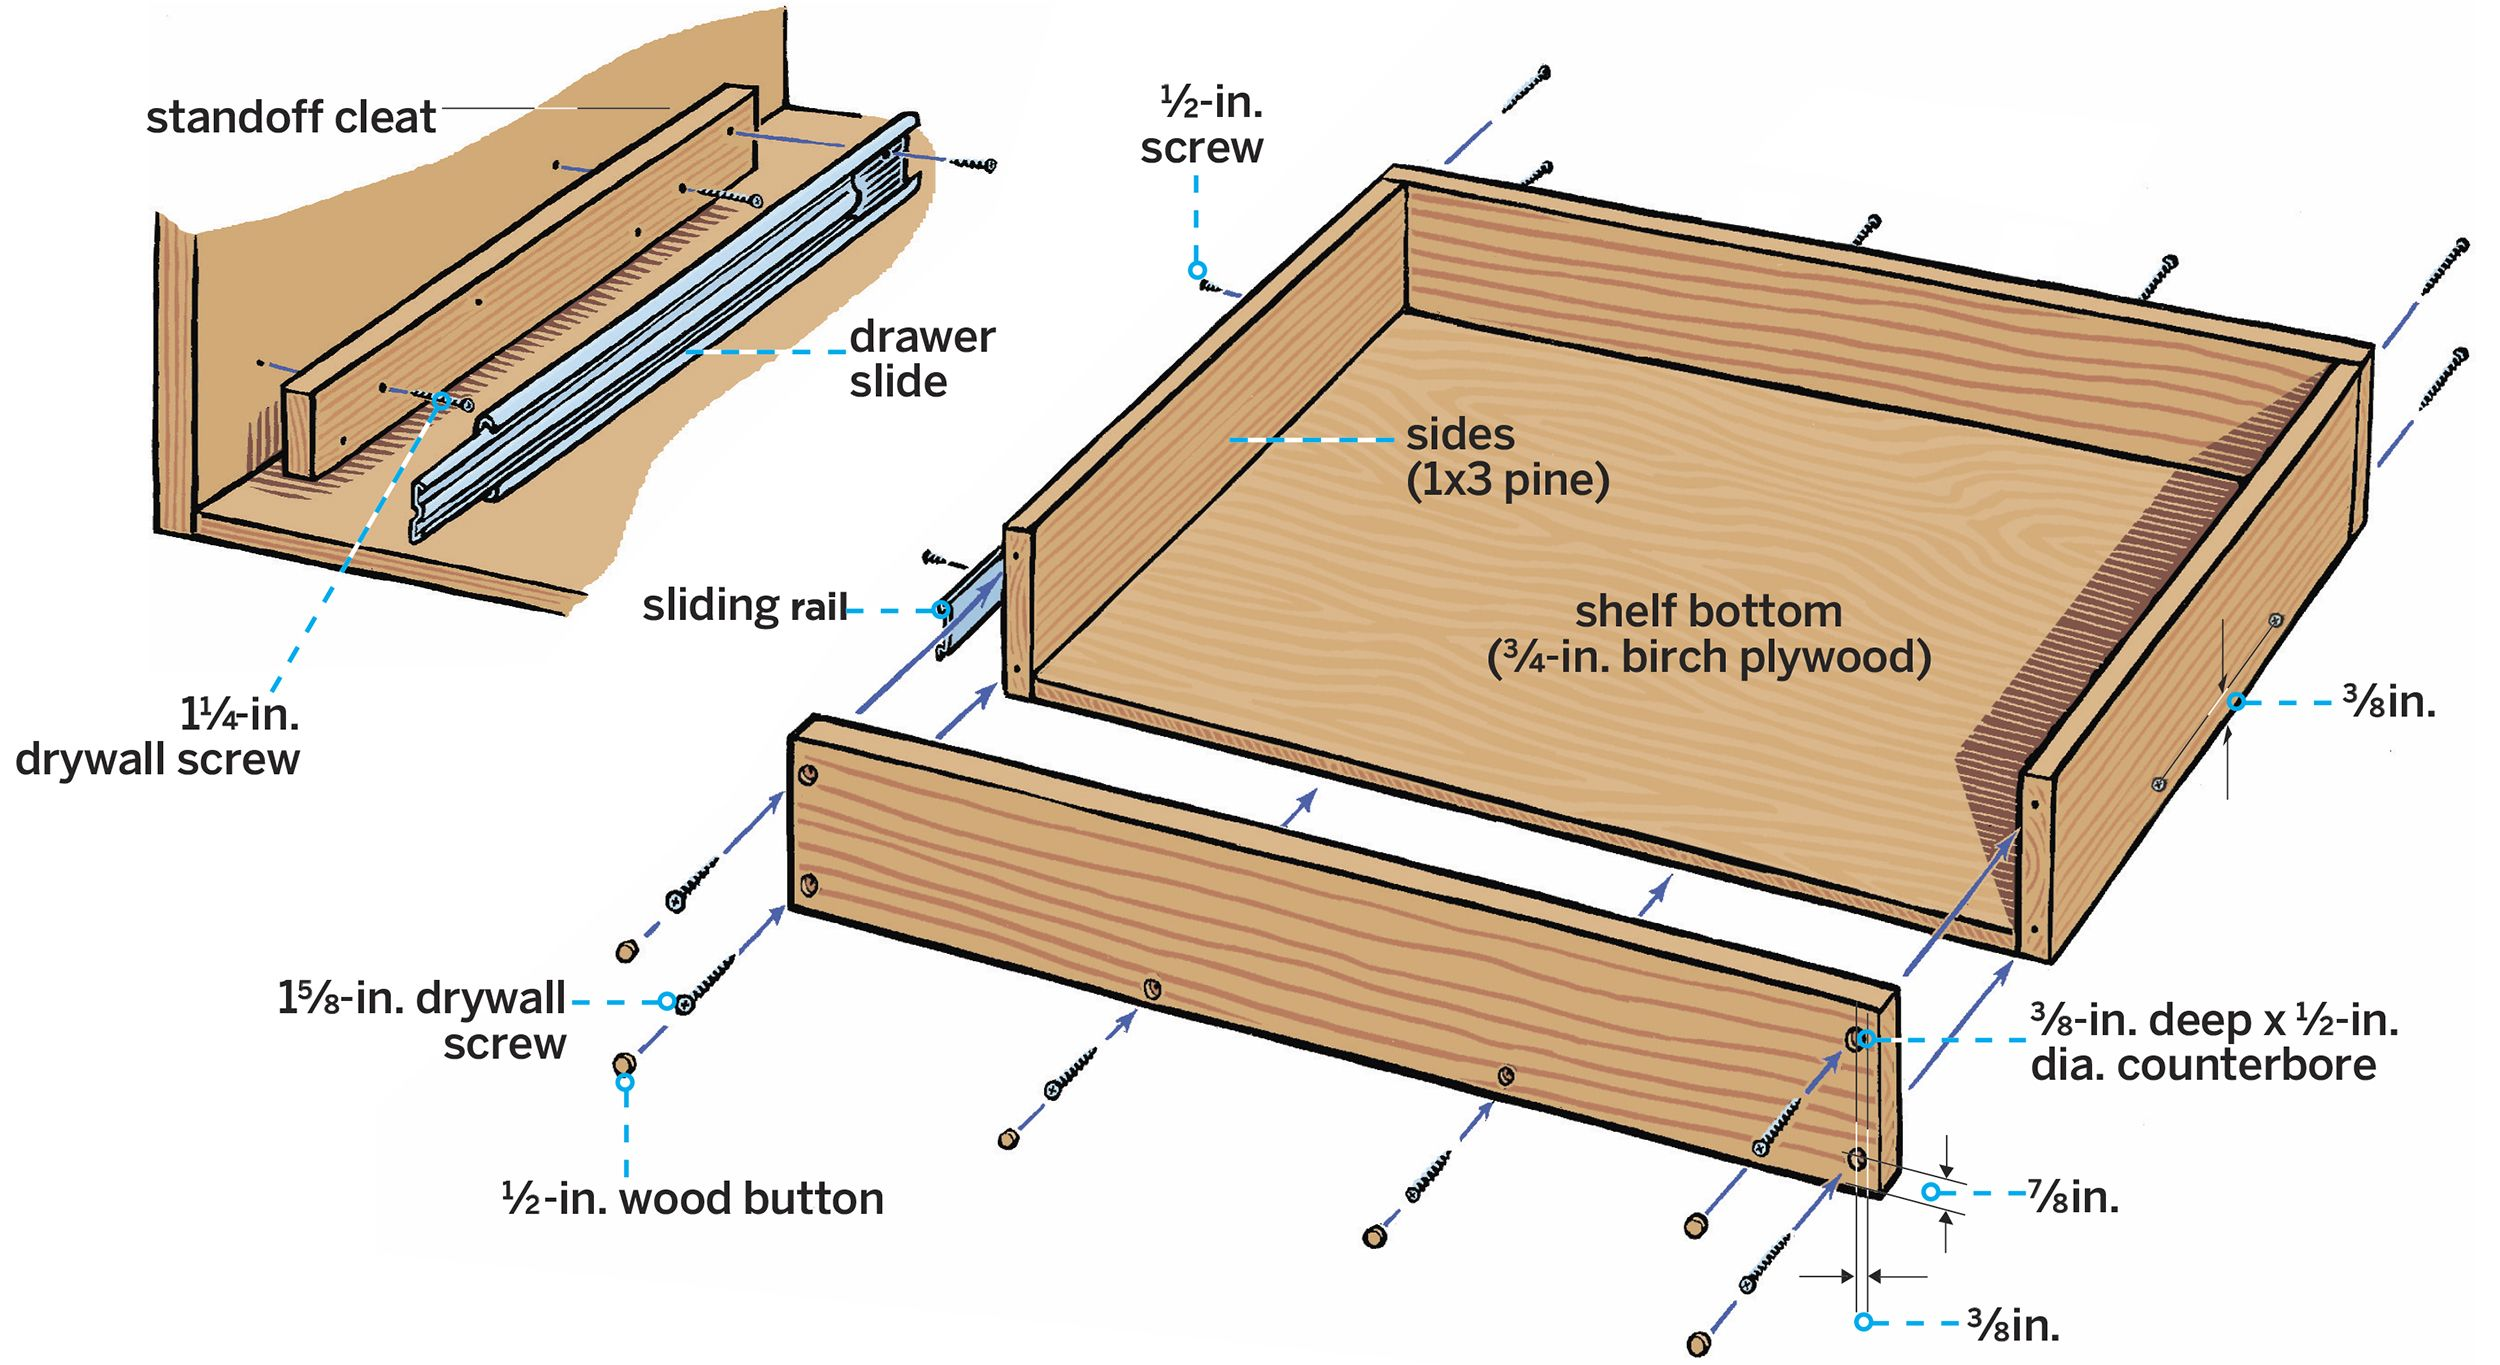 How To Install A Pull Out Kitchen Shelf Pull Out Kitchen Shelves Diy Pull Out Shelves Kitchen Shelves